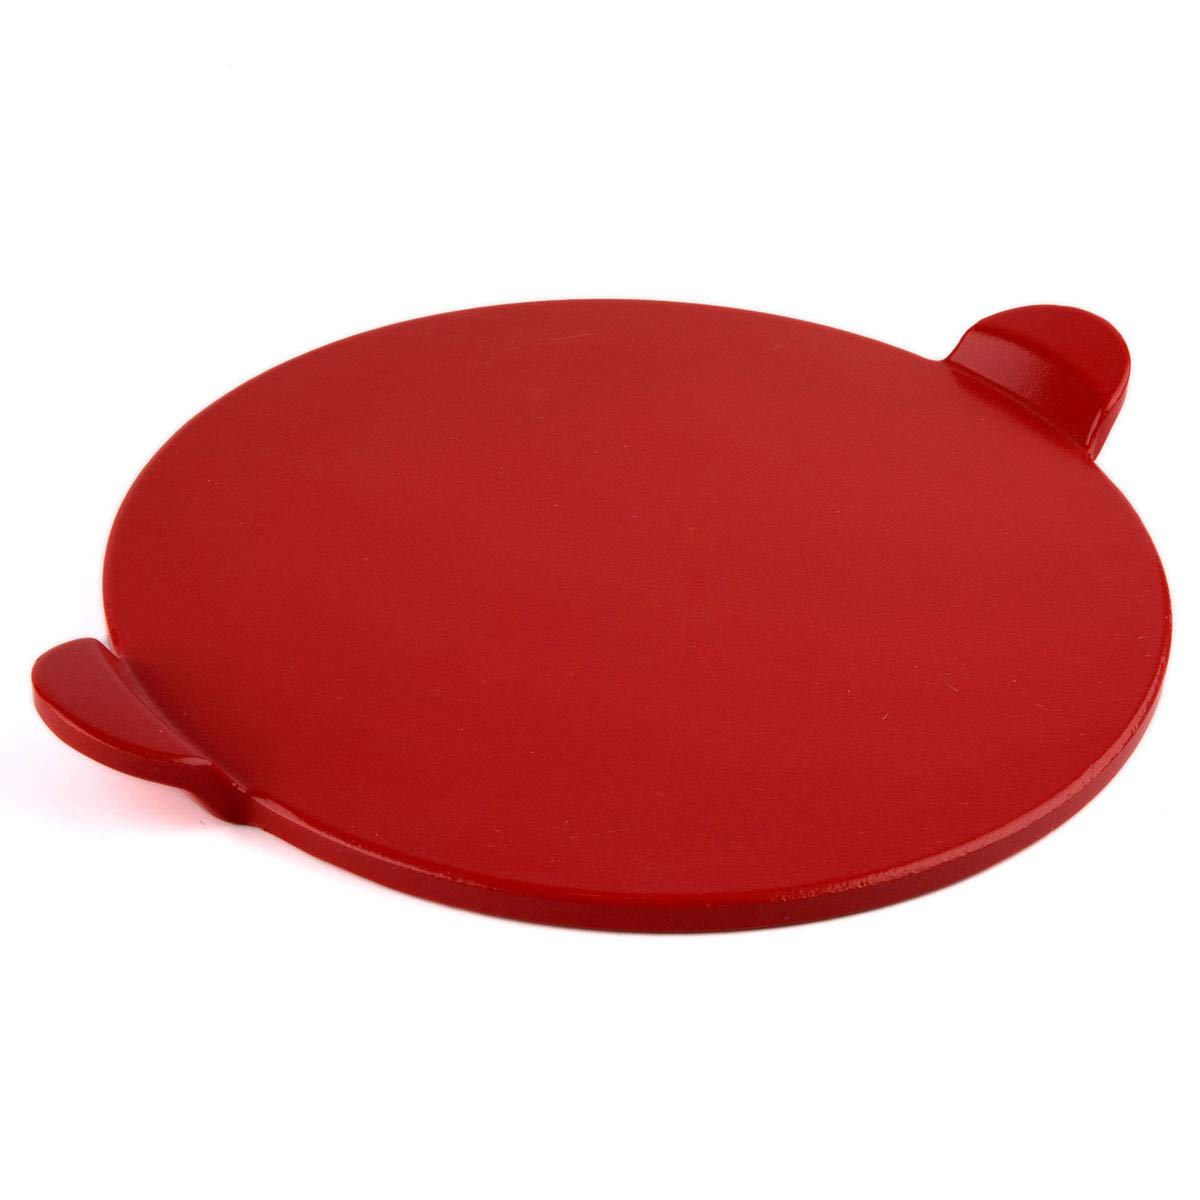 Waykea 13-inch Ceramic Glazed Cordierite Baking Pizza Stone for Grill or Oven, Red, Round with Handles PS1302